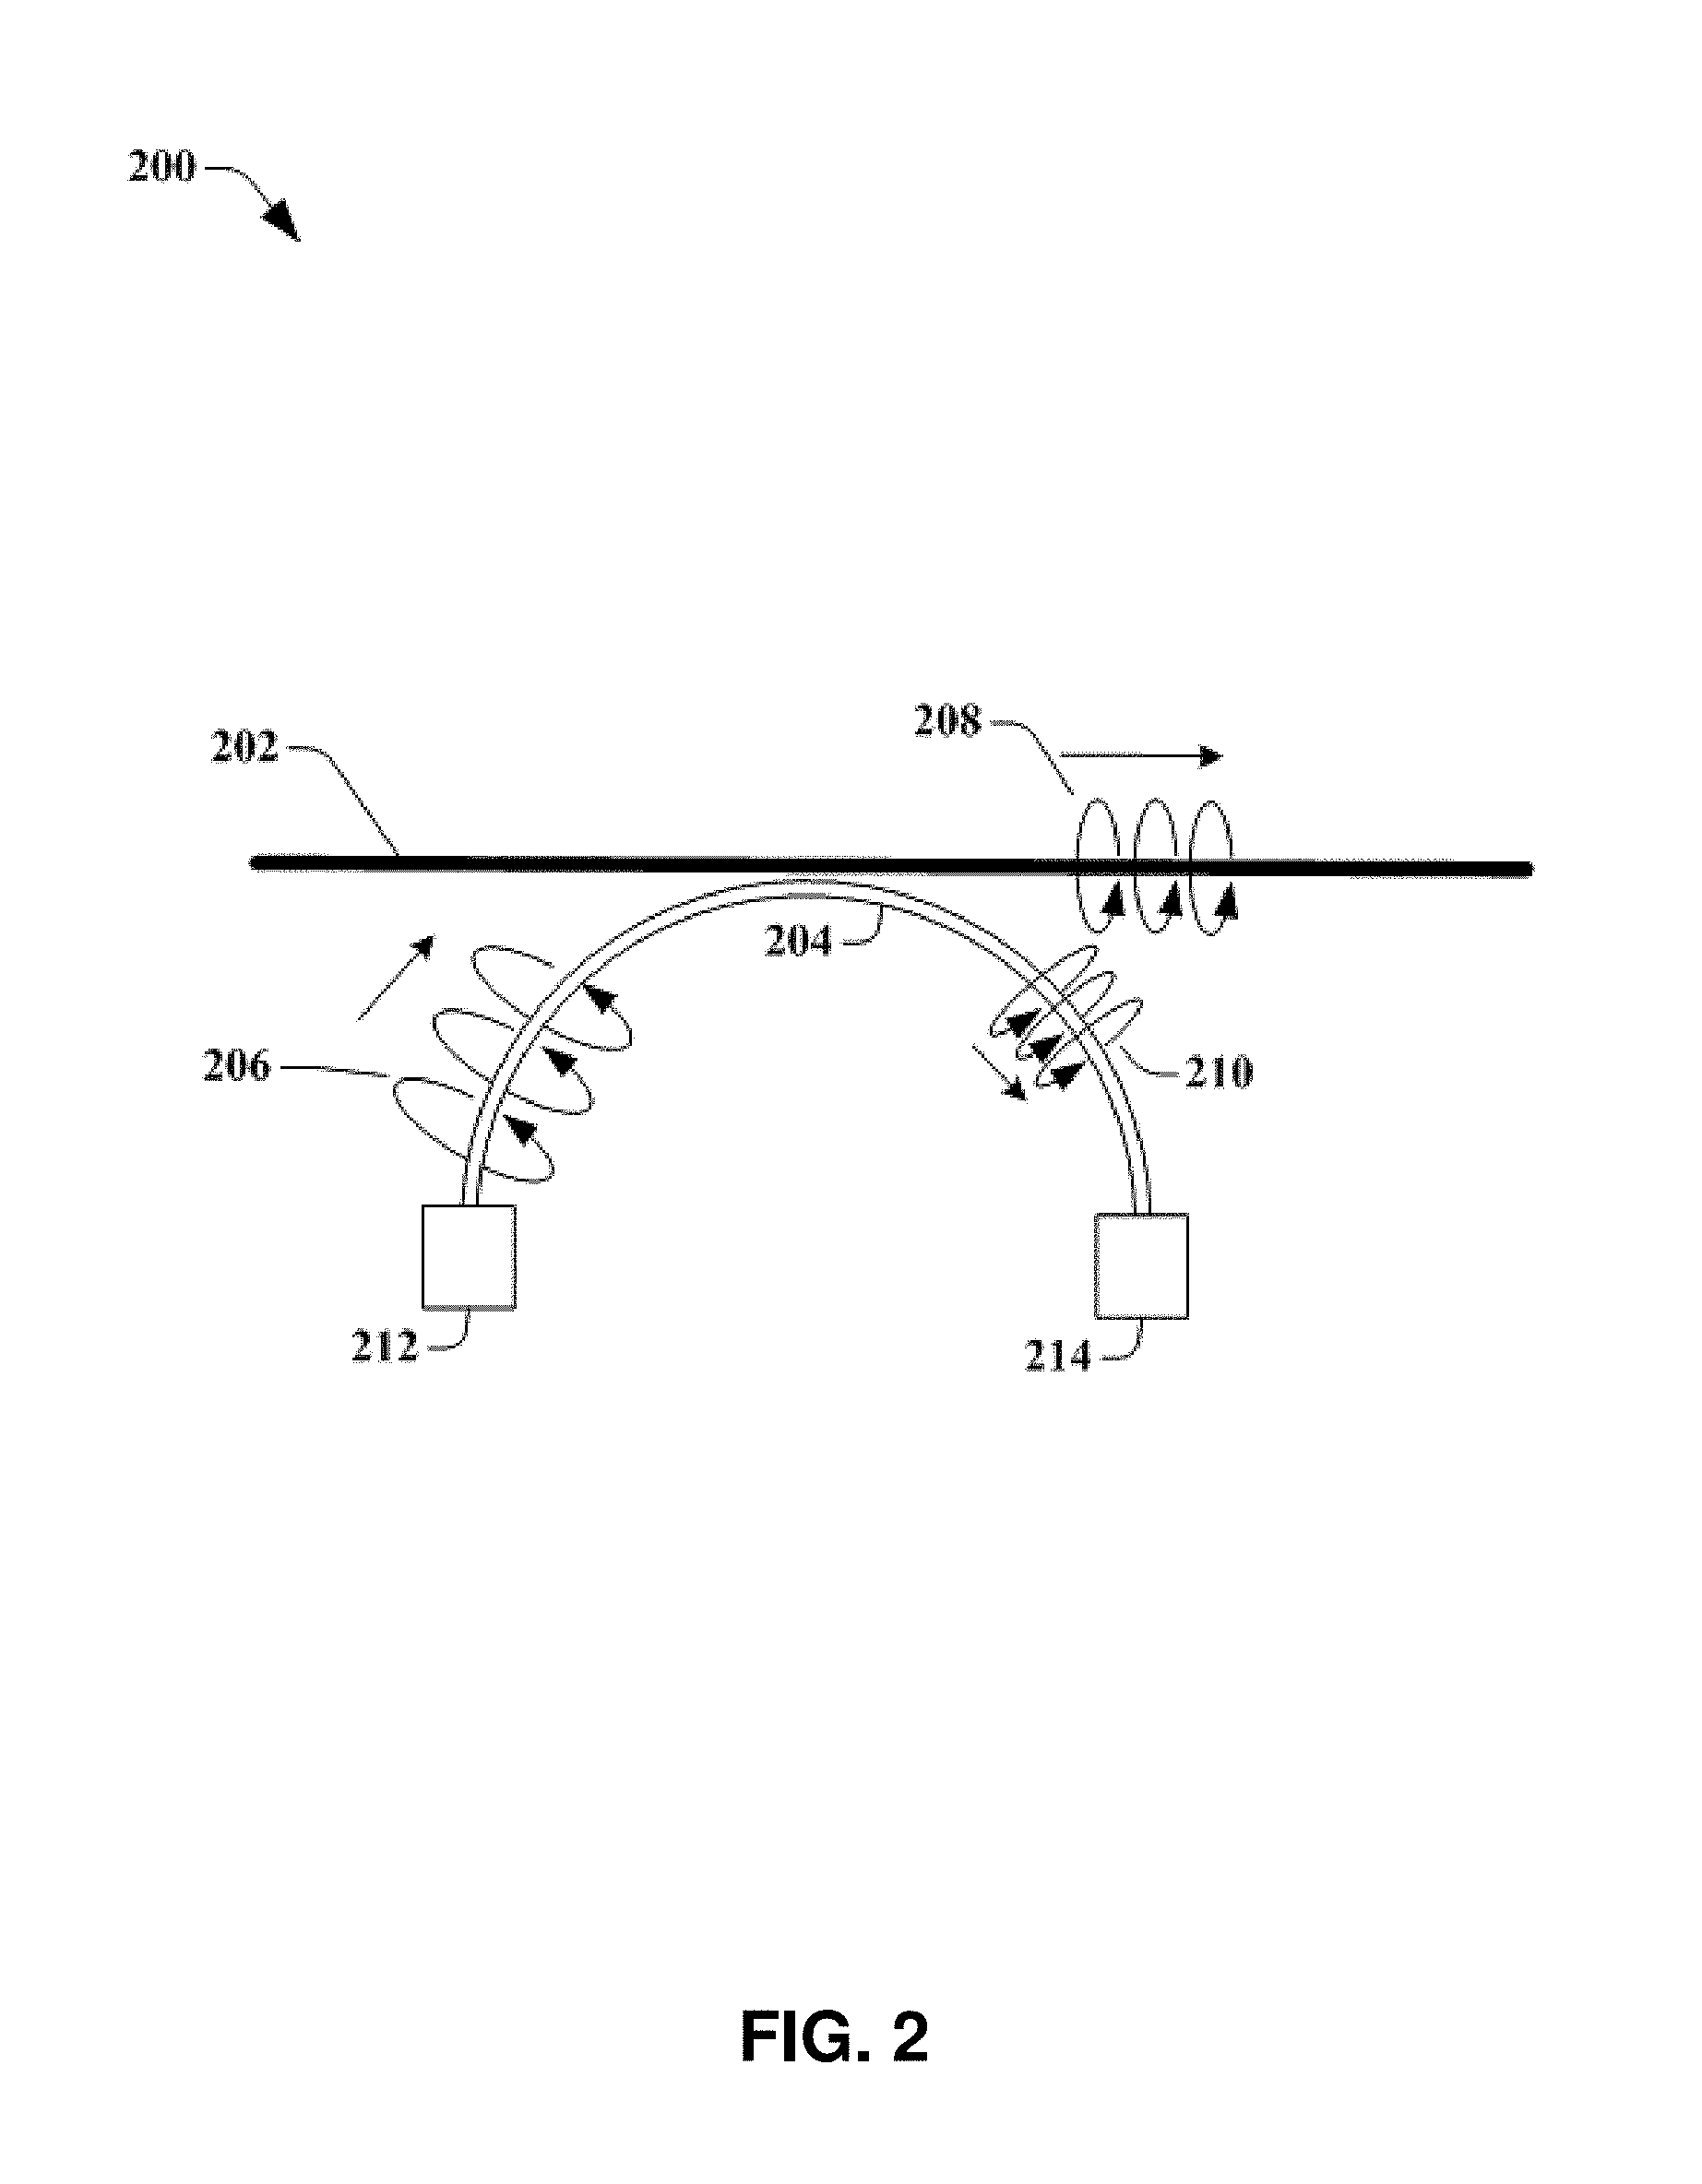 Us9800327b2 apparatus for controlling operations of a munication device and methods thereof patents